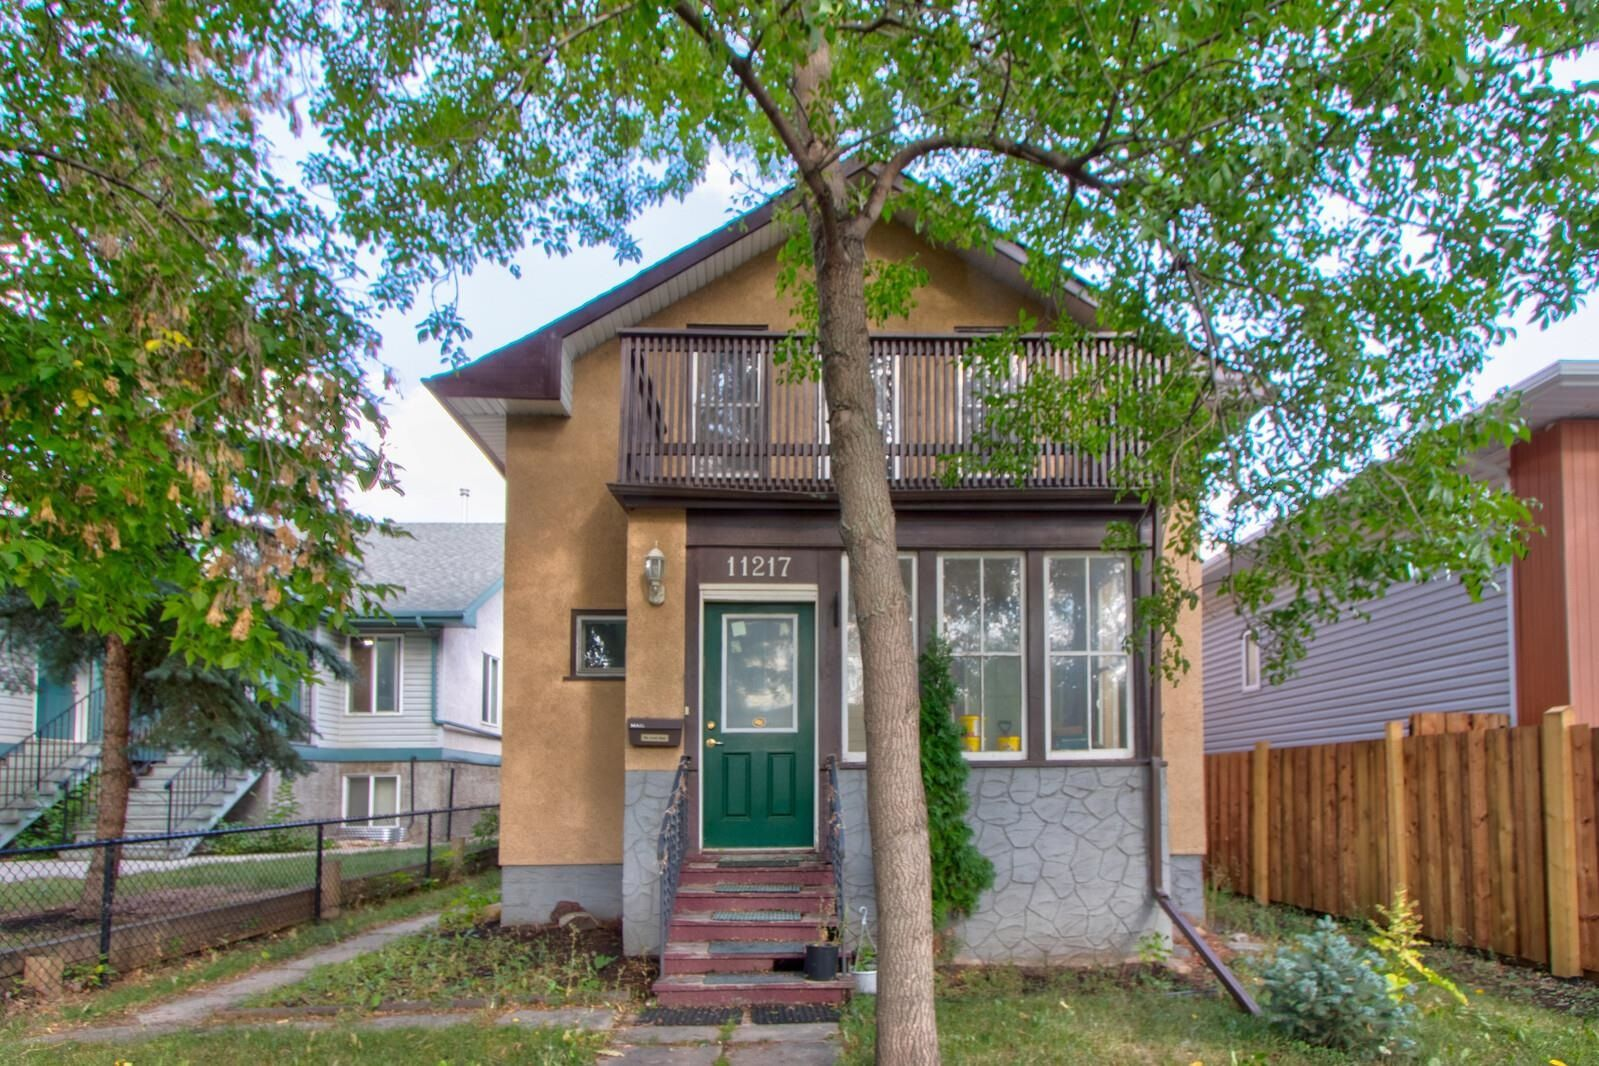 Main Photo: 11217 87 Street NW in Edmonton: Zone 05 House for sale : MLS®# E4260181